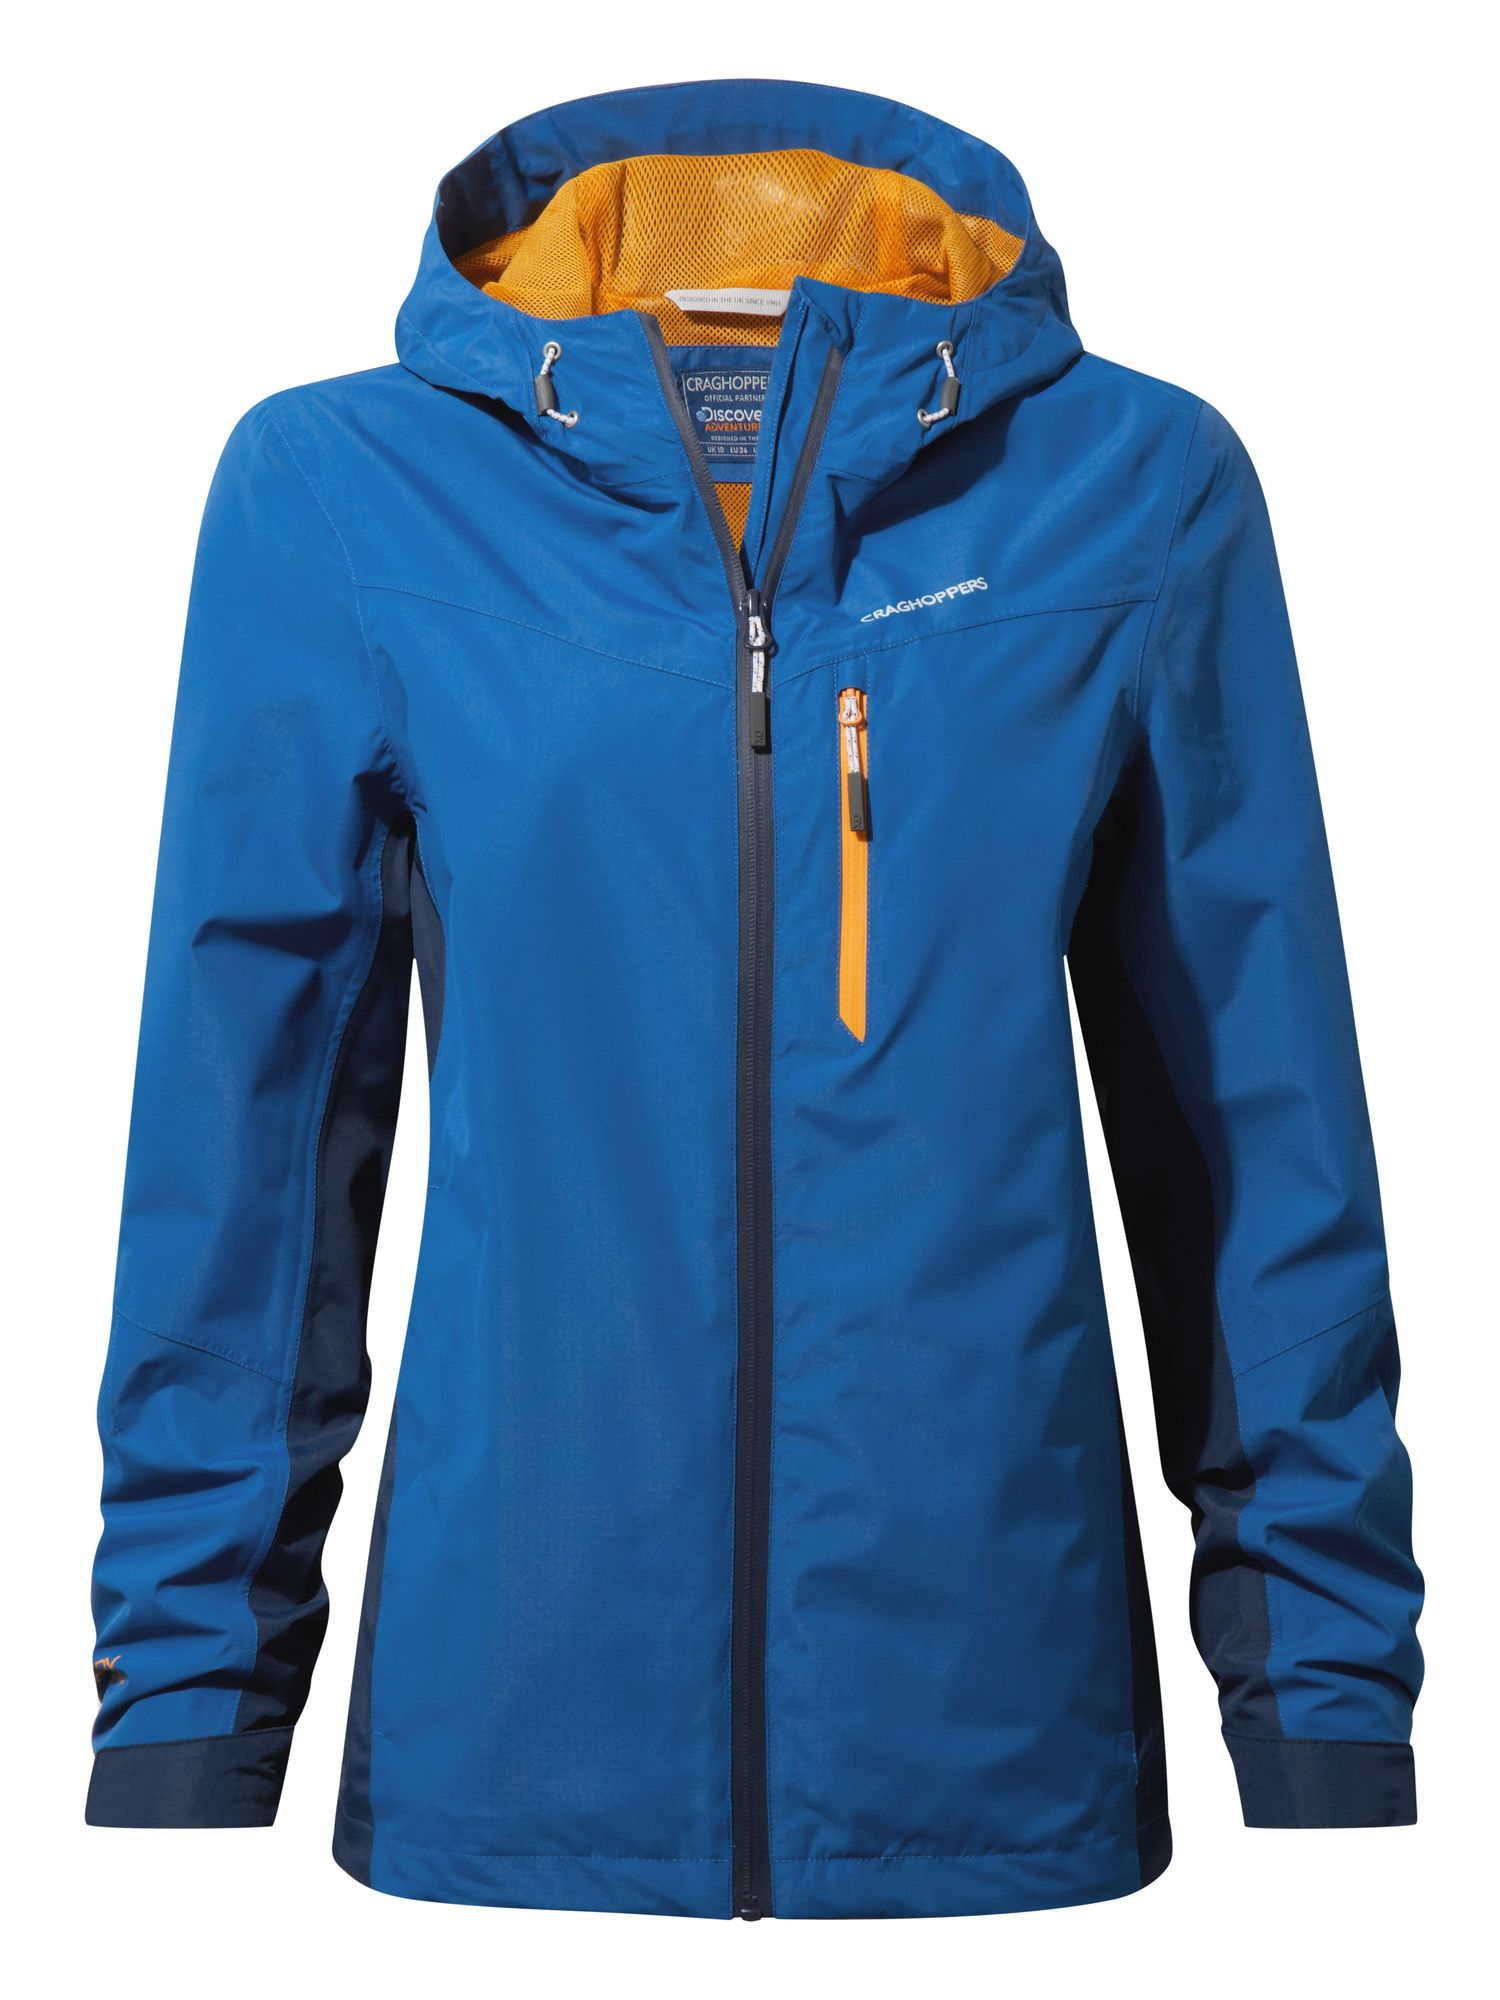 Craghoppers Discovery Waterproof Shell Jacket, Blue